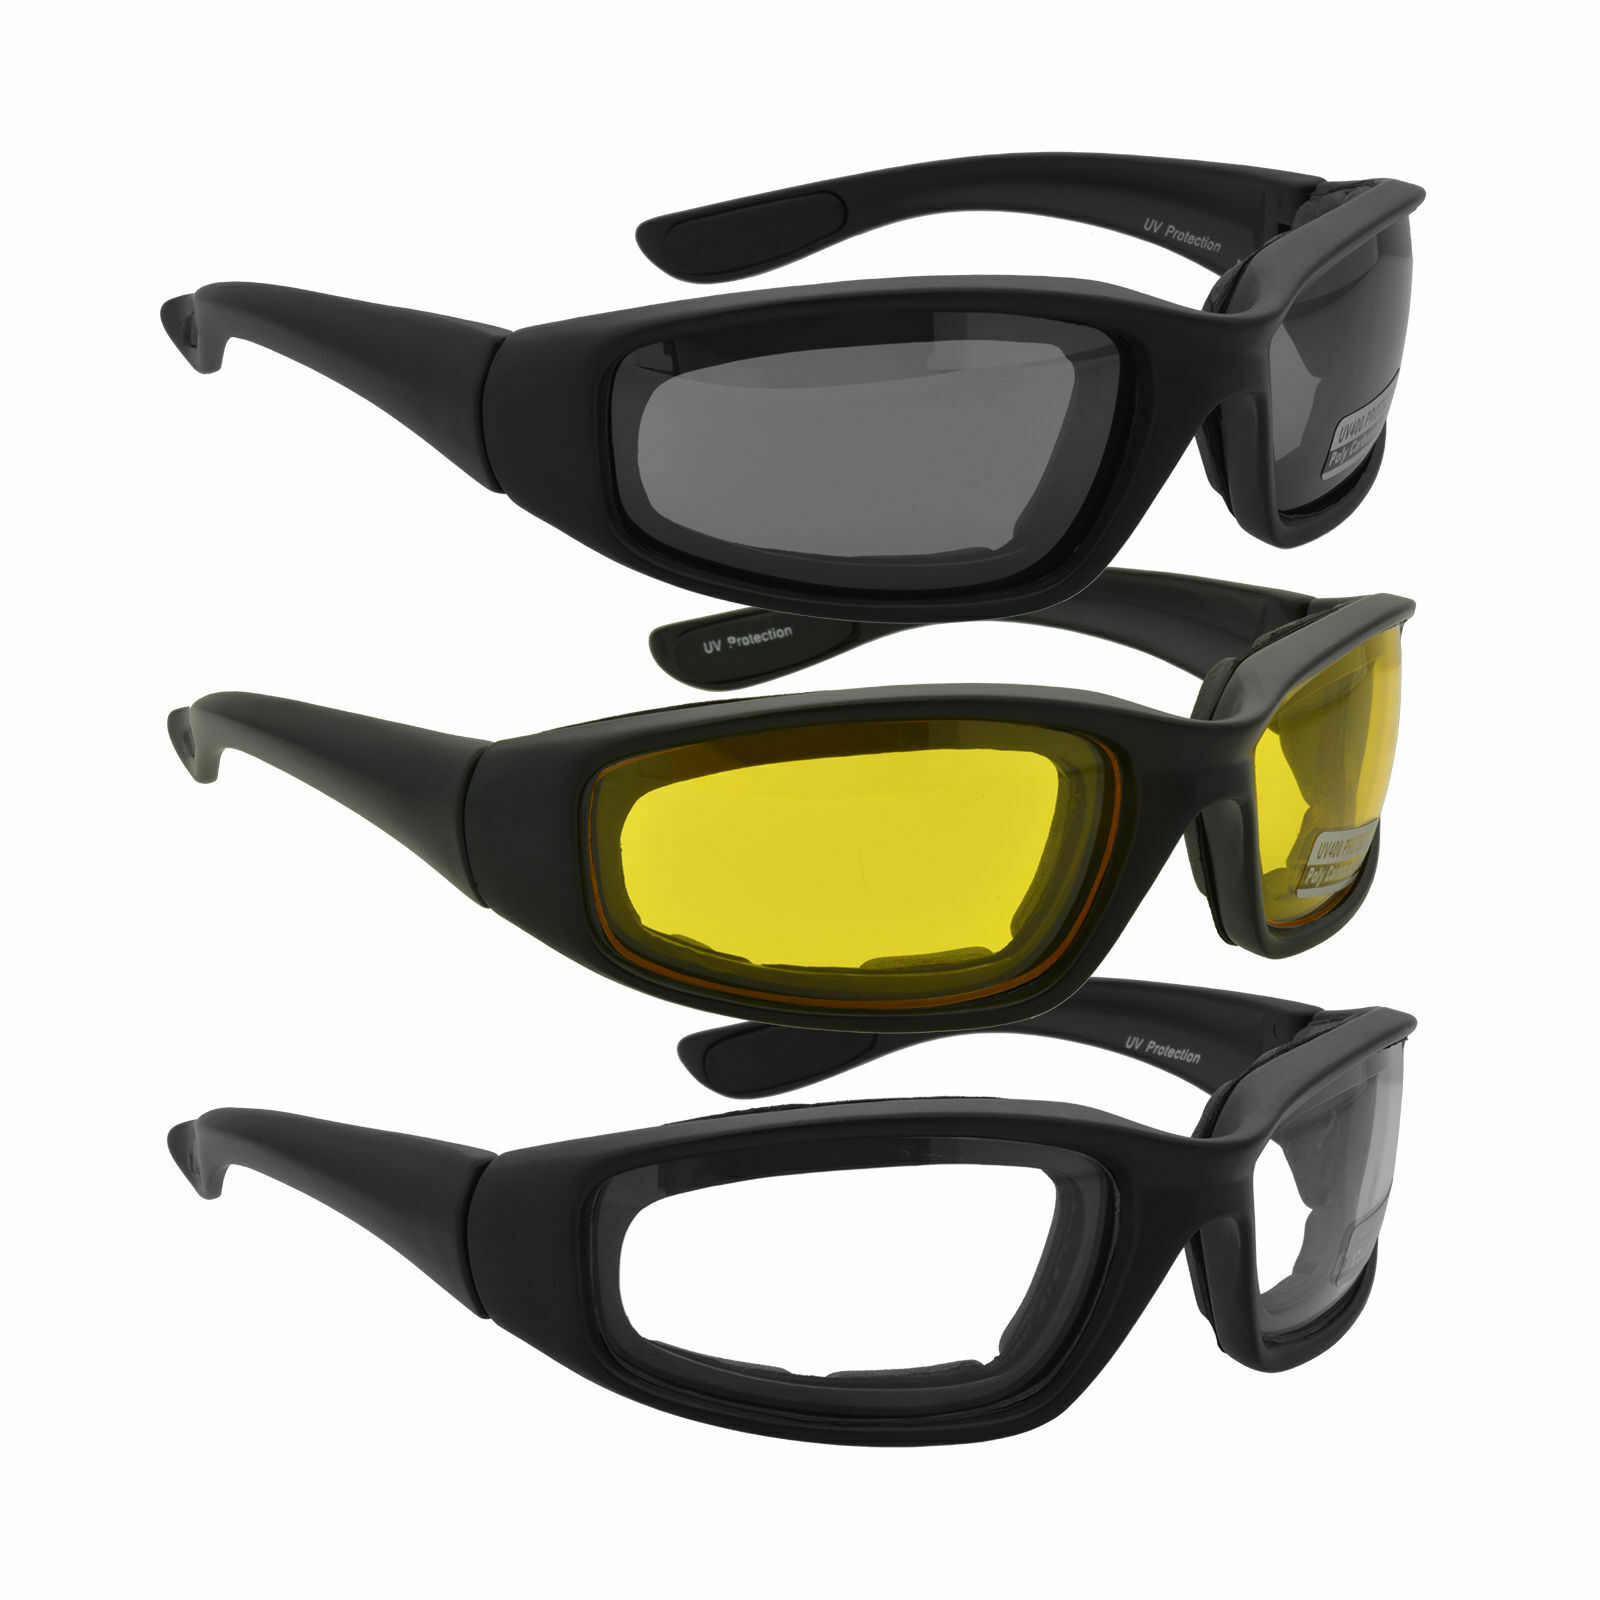 3PC Combo Motorcycle Riding Glasses Colors Sunglasses Wind Resistant Bike Goggle